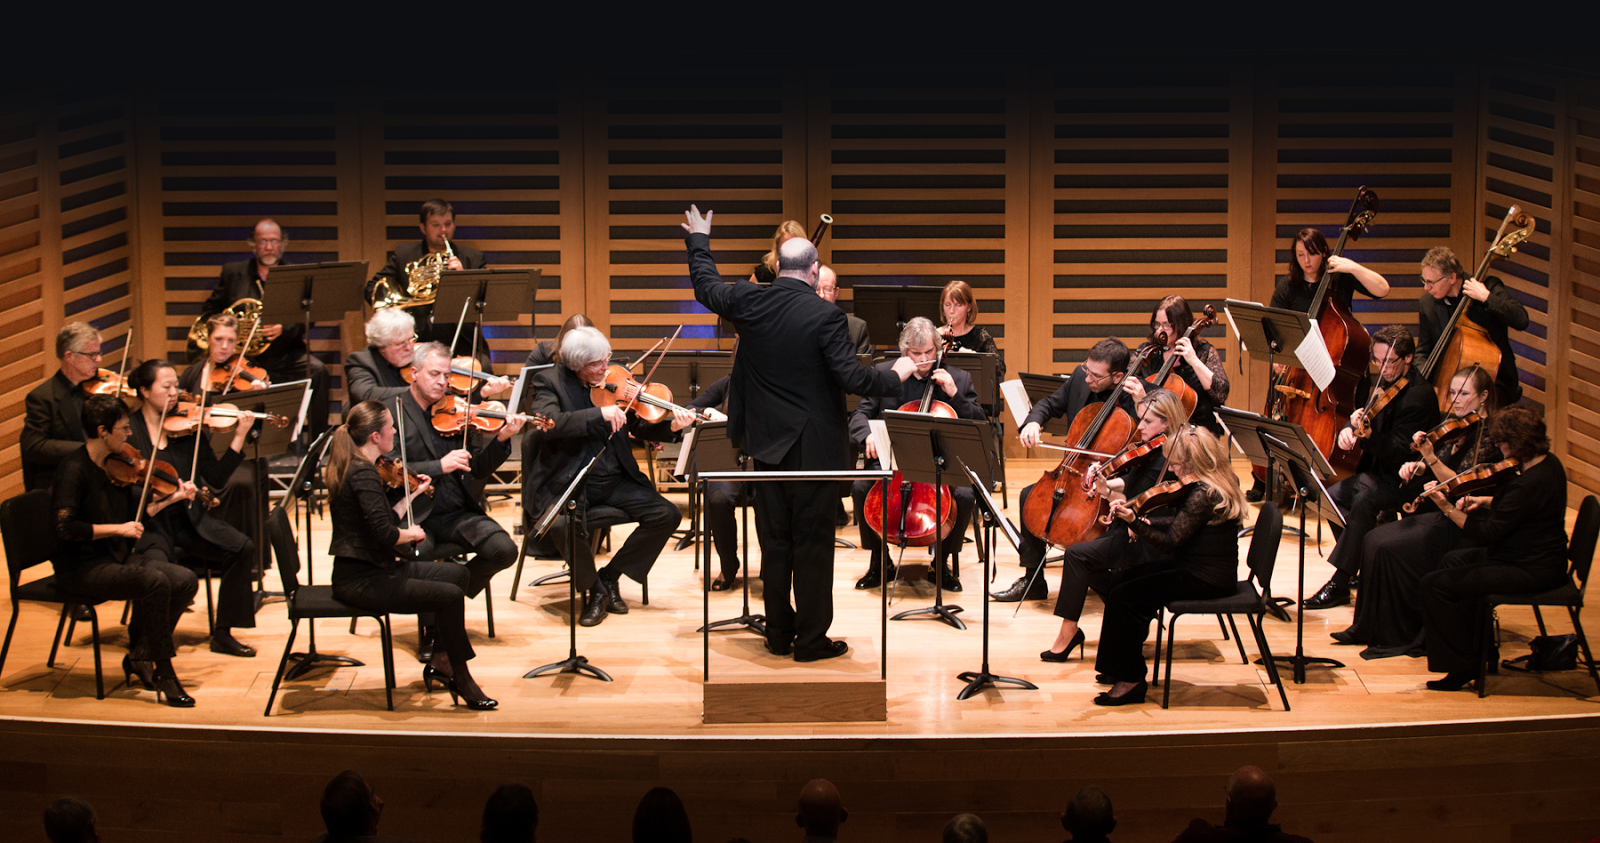 a concert review of the dallas symphony orchestra with sir james galway - classical tickets sold by licensed ticket broker that carries large selection of tickets  dallas symphony orchestra damon gupton dan brubeck  sir james galway.